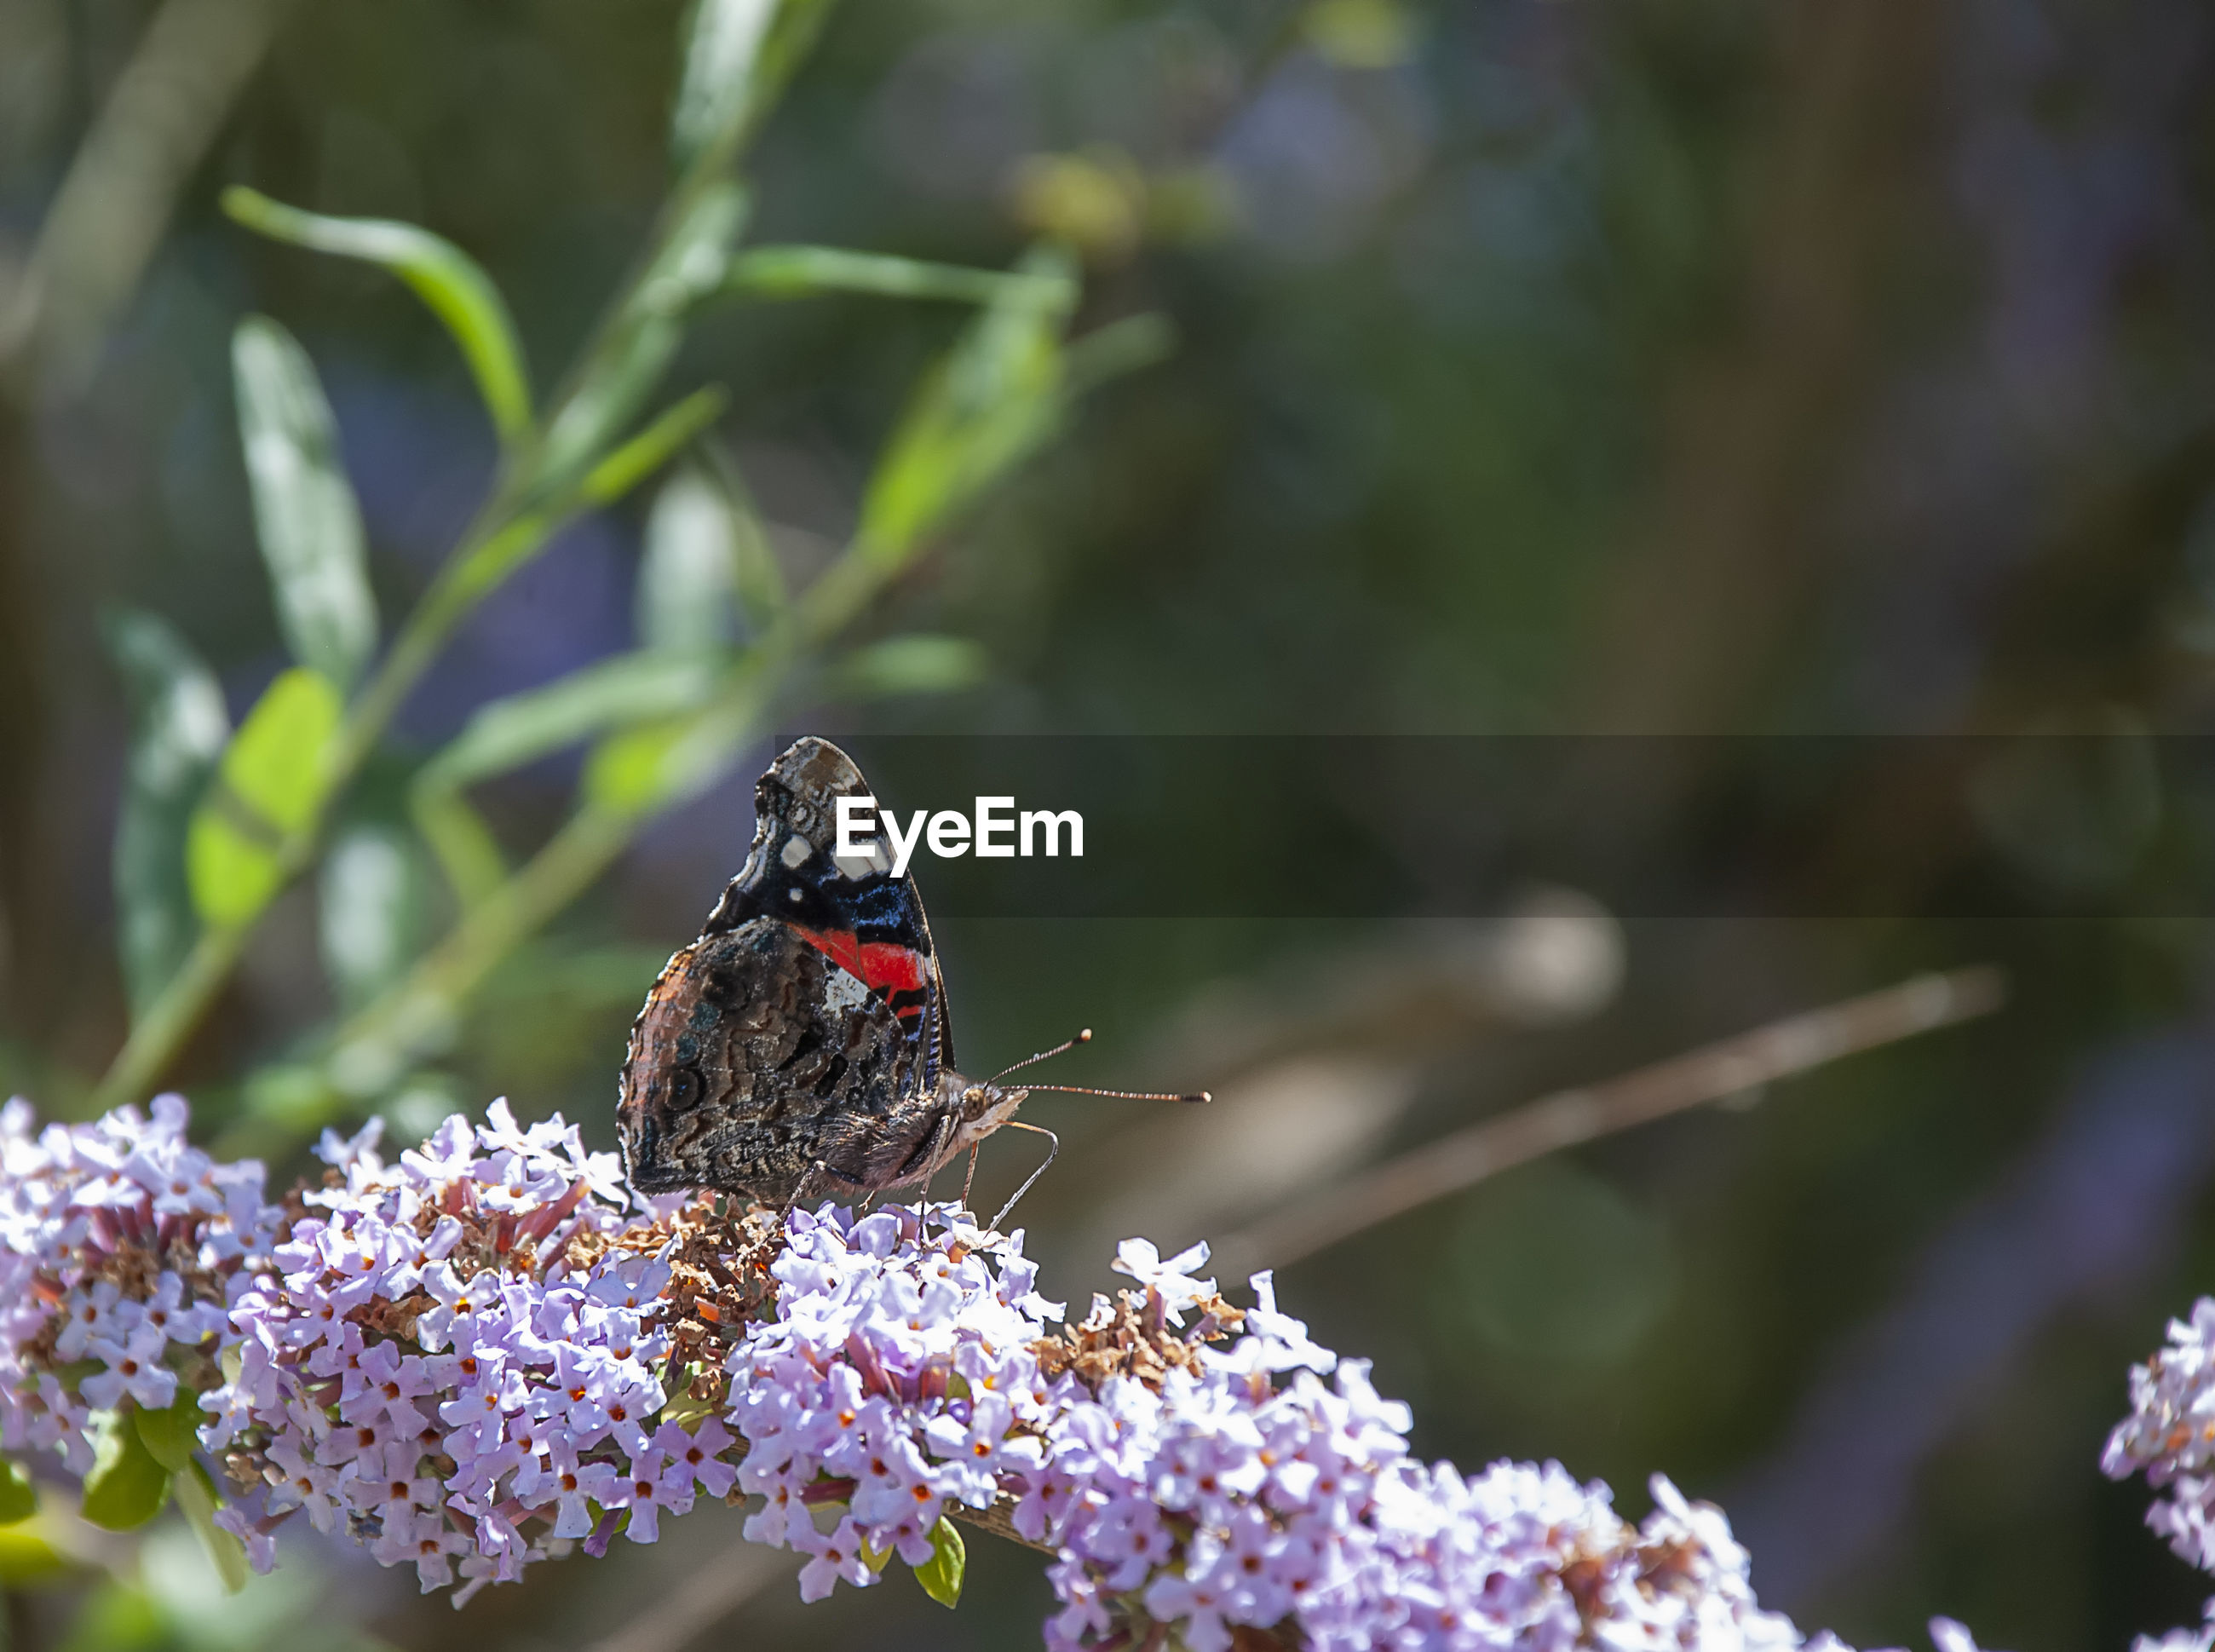 CLOSE-UP OF BUTTERFLY POLLINATING ON PURPLE FLOWERING PLANT